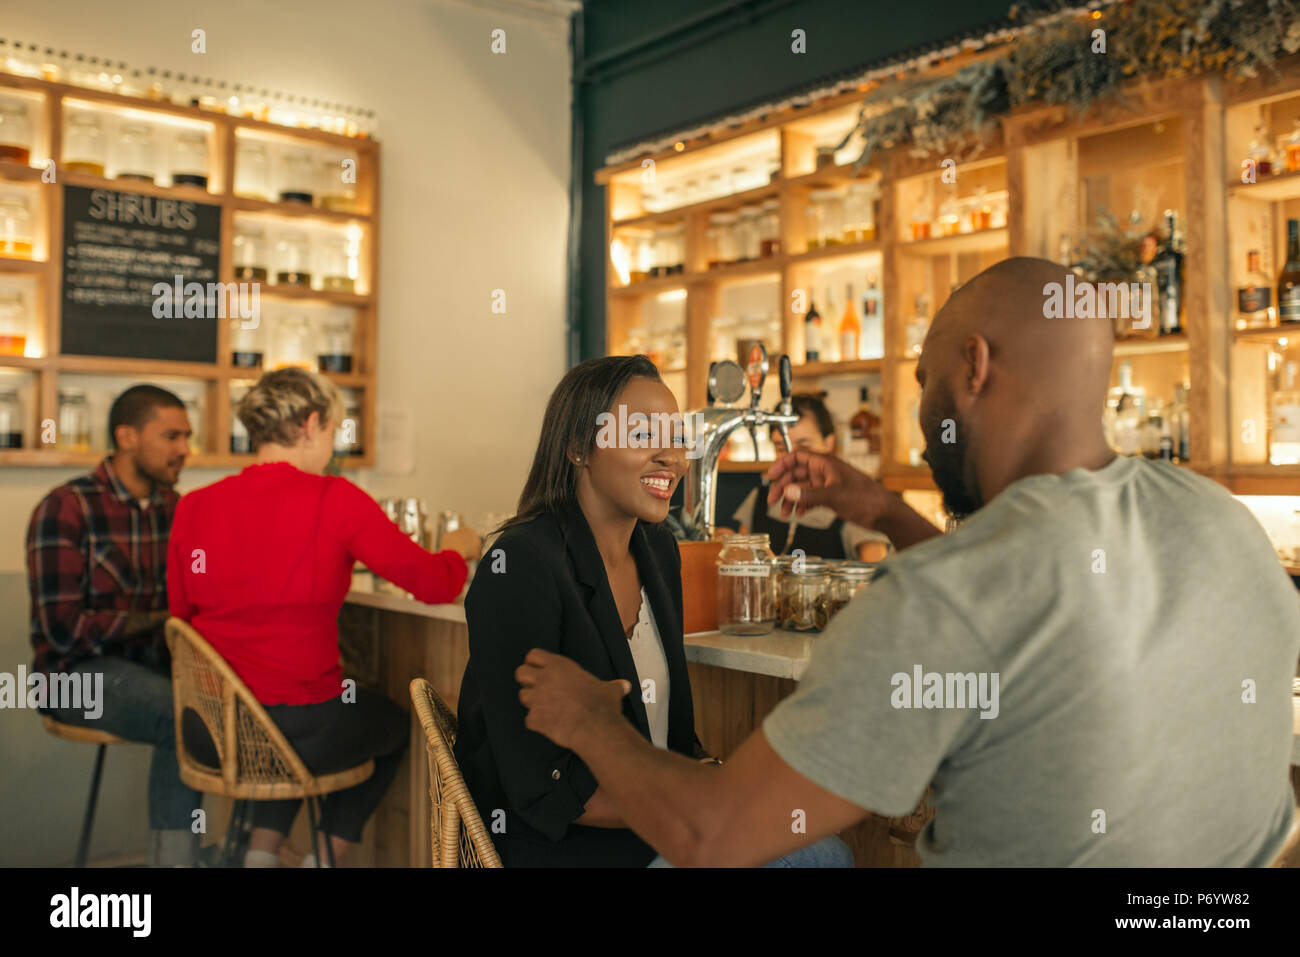 Smiling African American couple enjoying drinks together in a bar - Stock Image